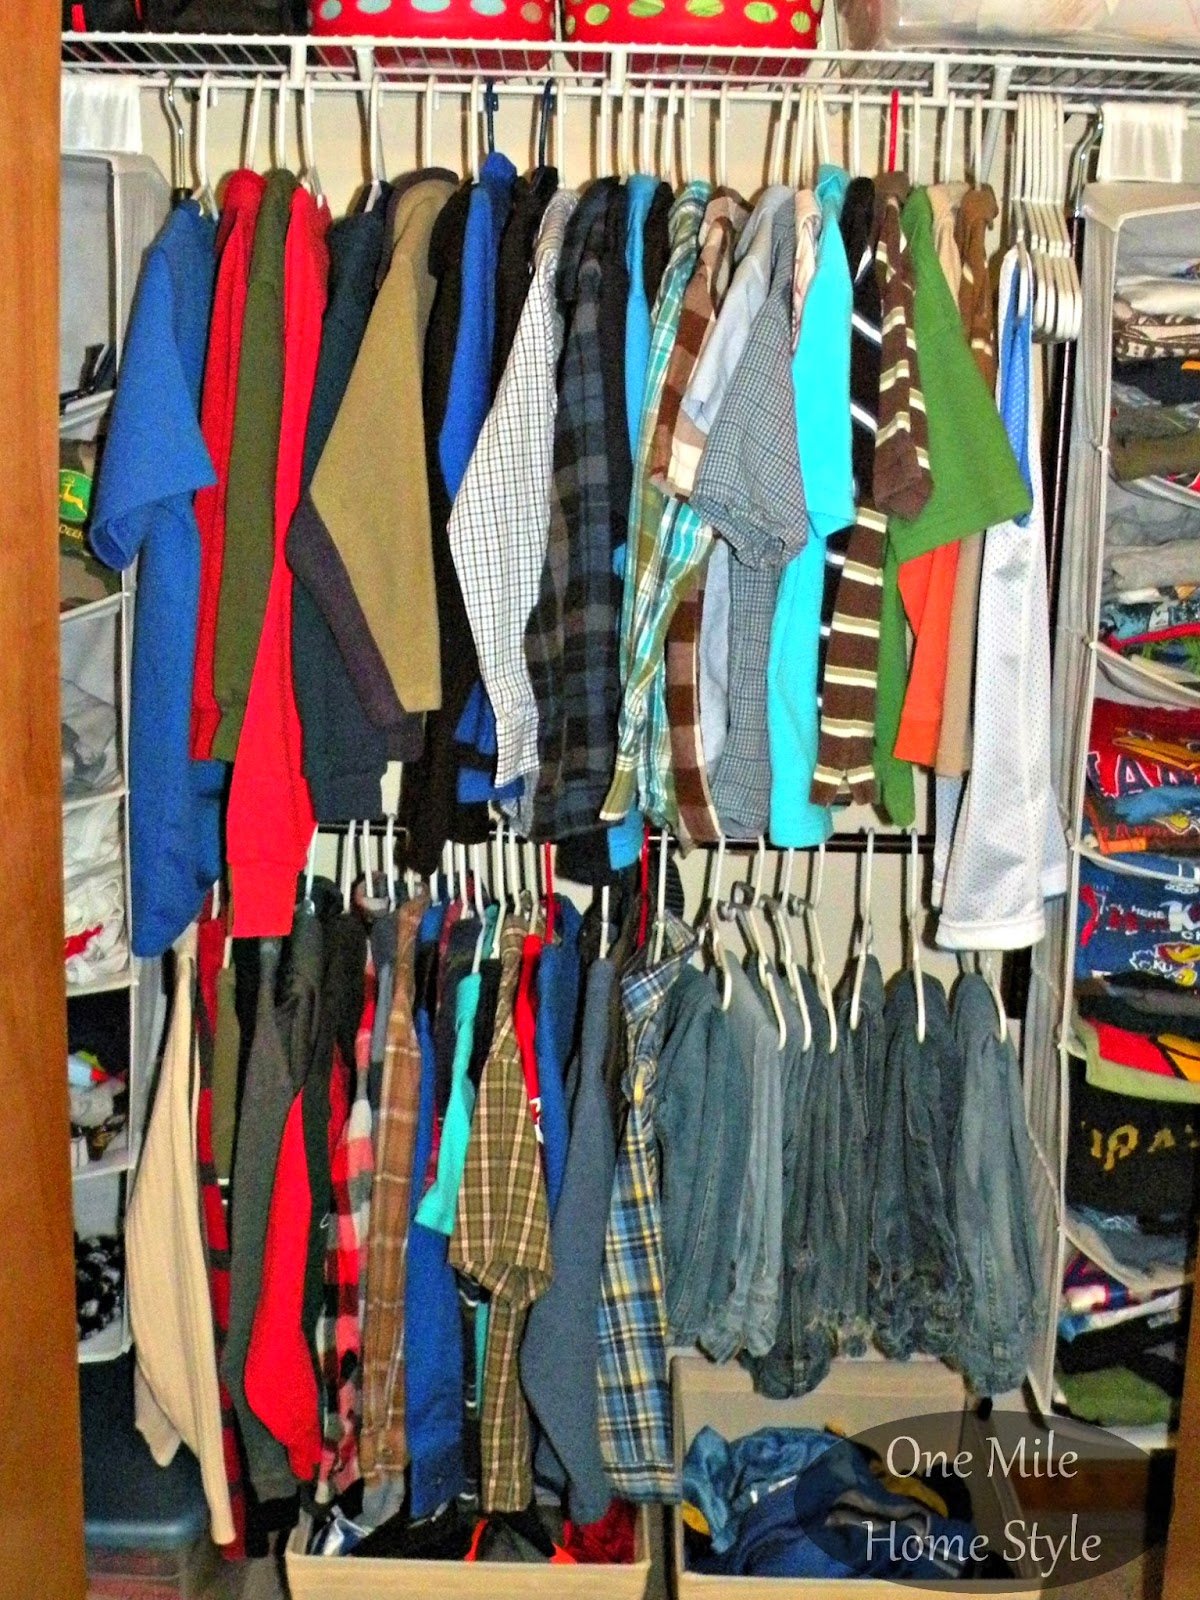 Double closet space with a hanging rod